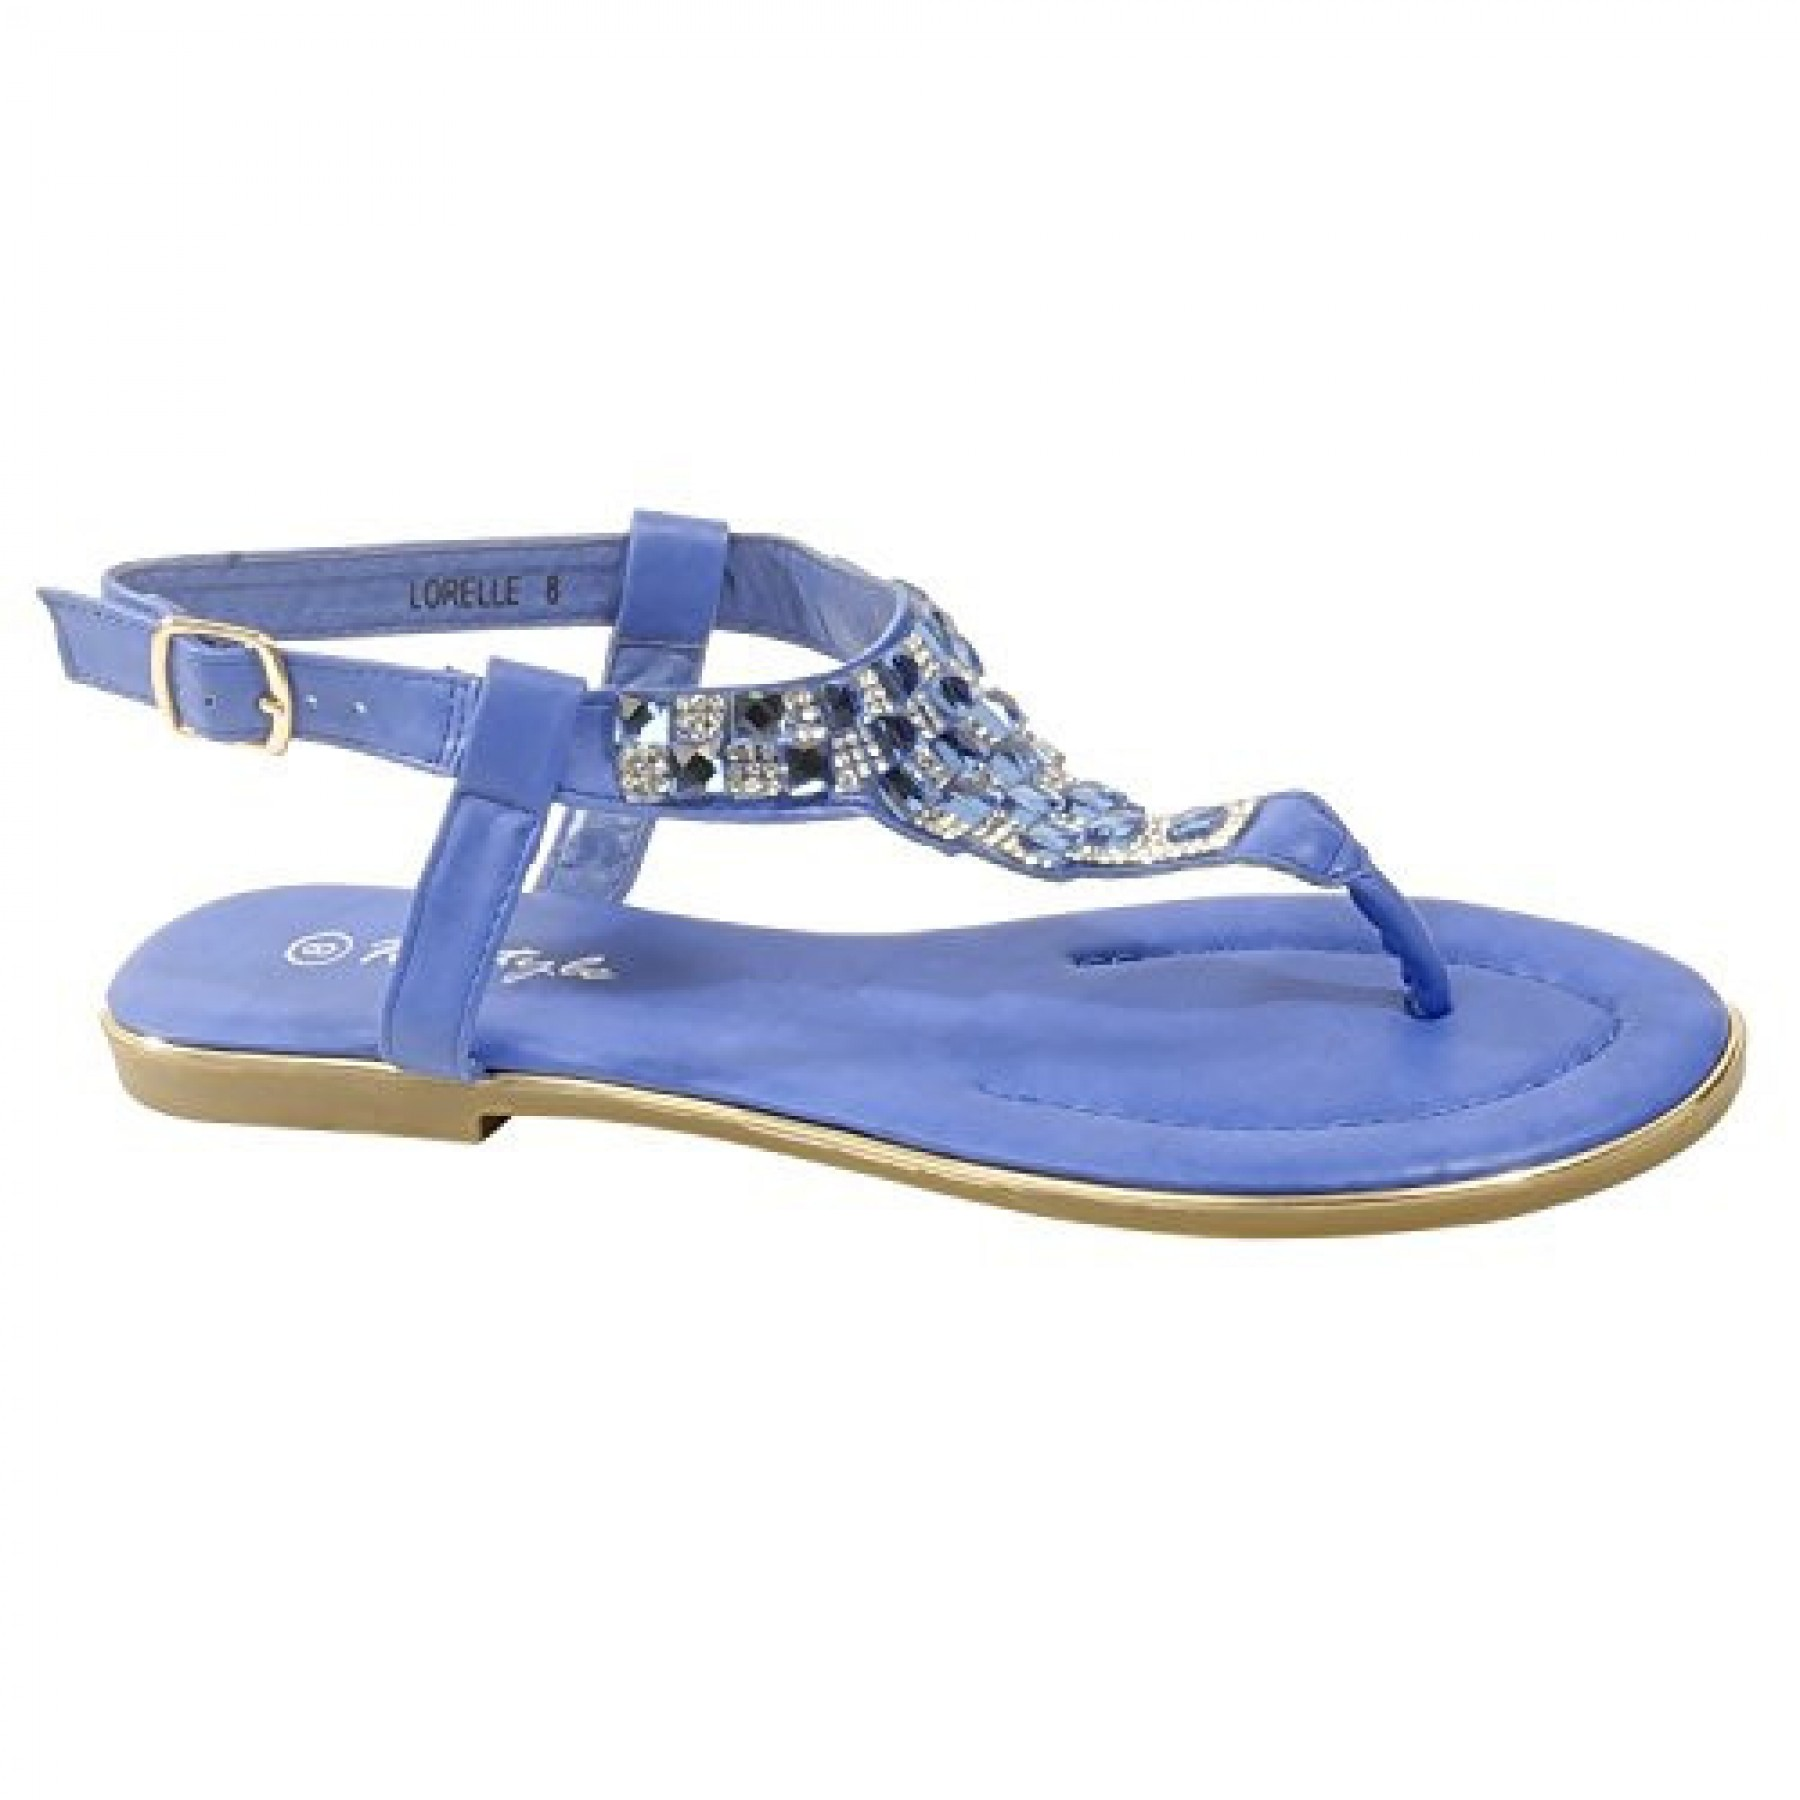 Women's Royal Blue Manmade Lorelle Thong Sandal with Patterned Jewel Vamp